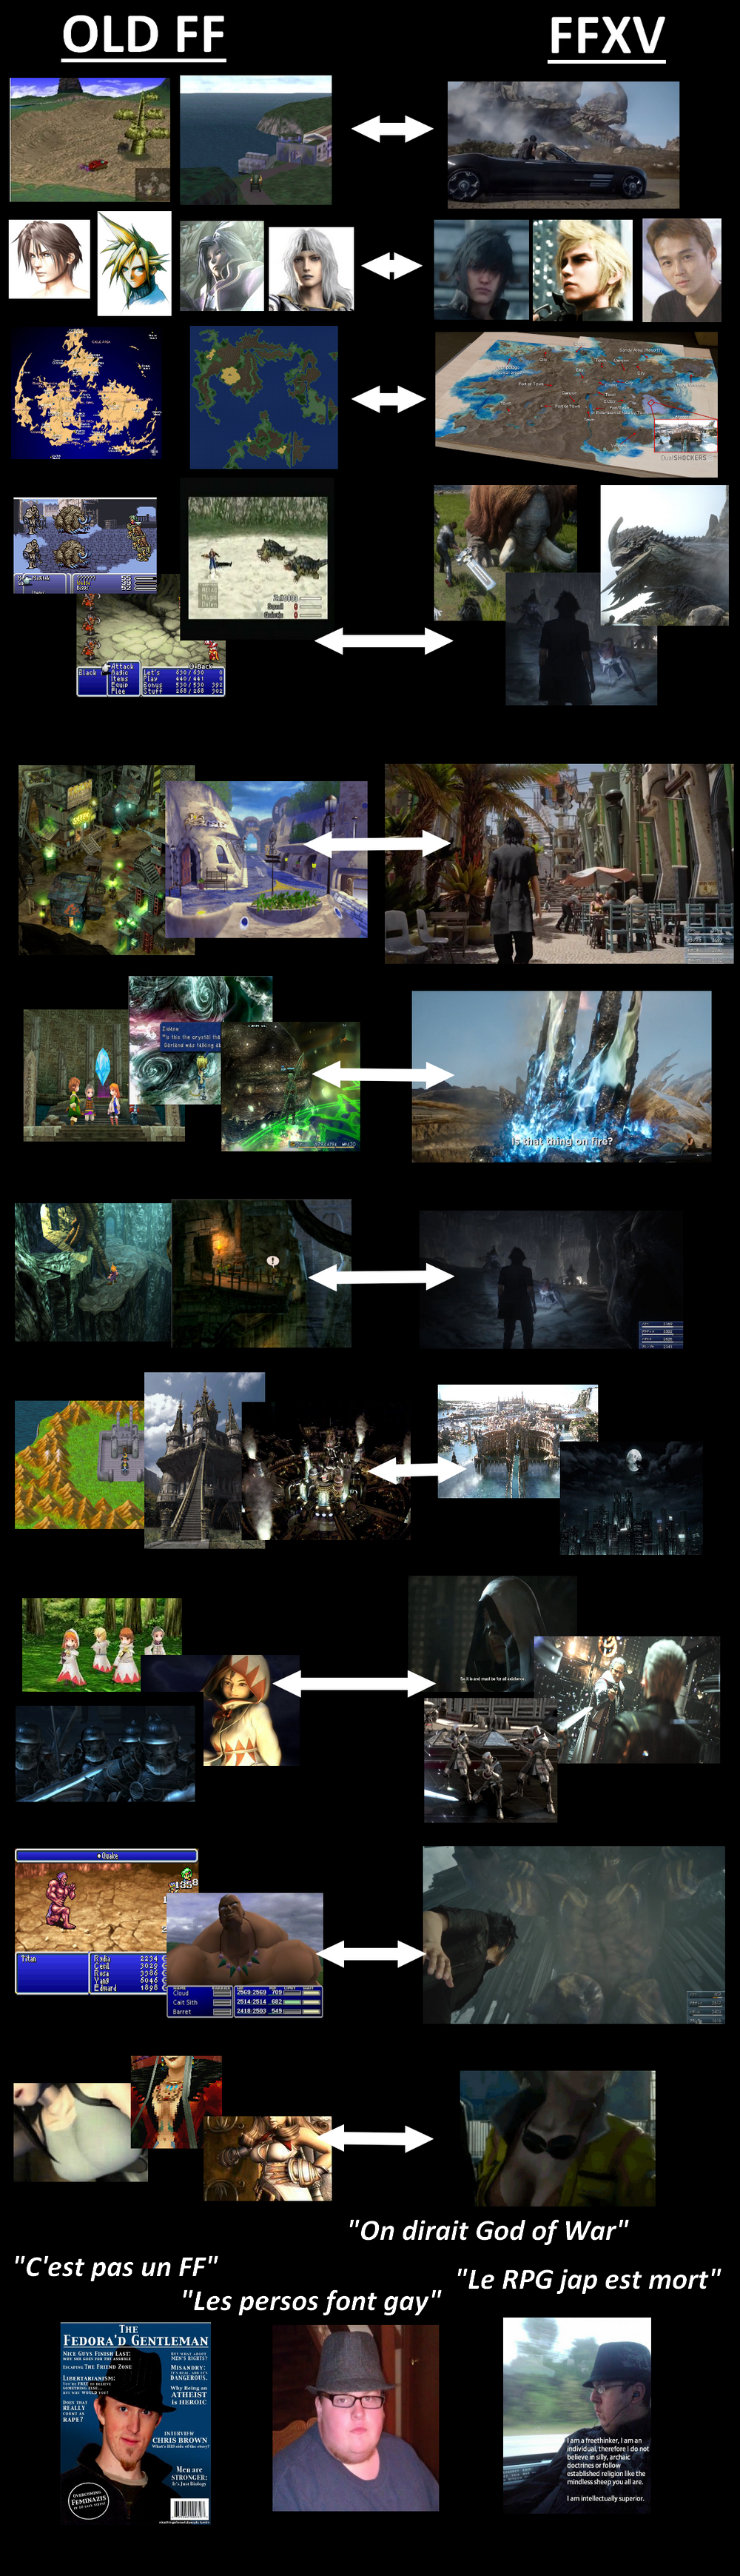 Final Fantasy, les jeux - Page 4 1419254101-comparatif